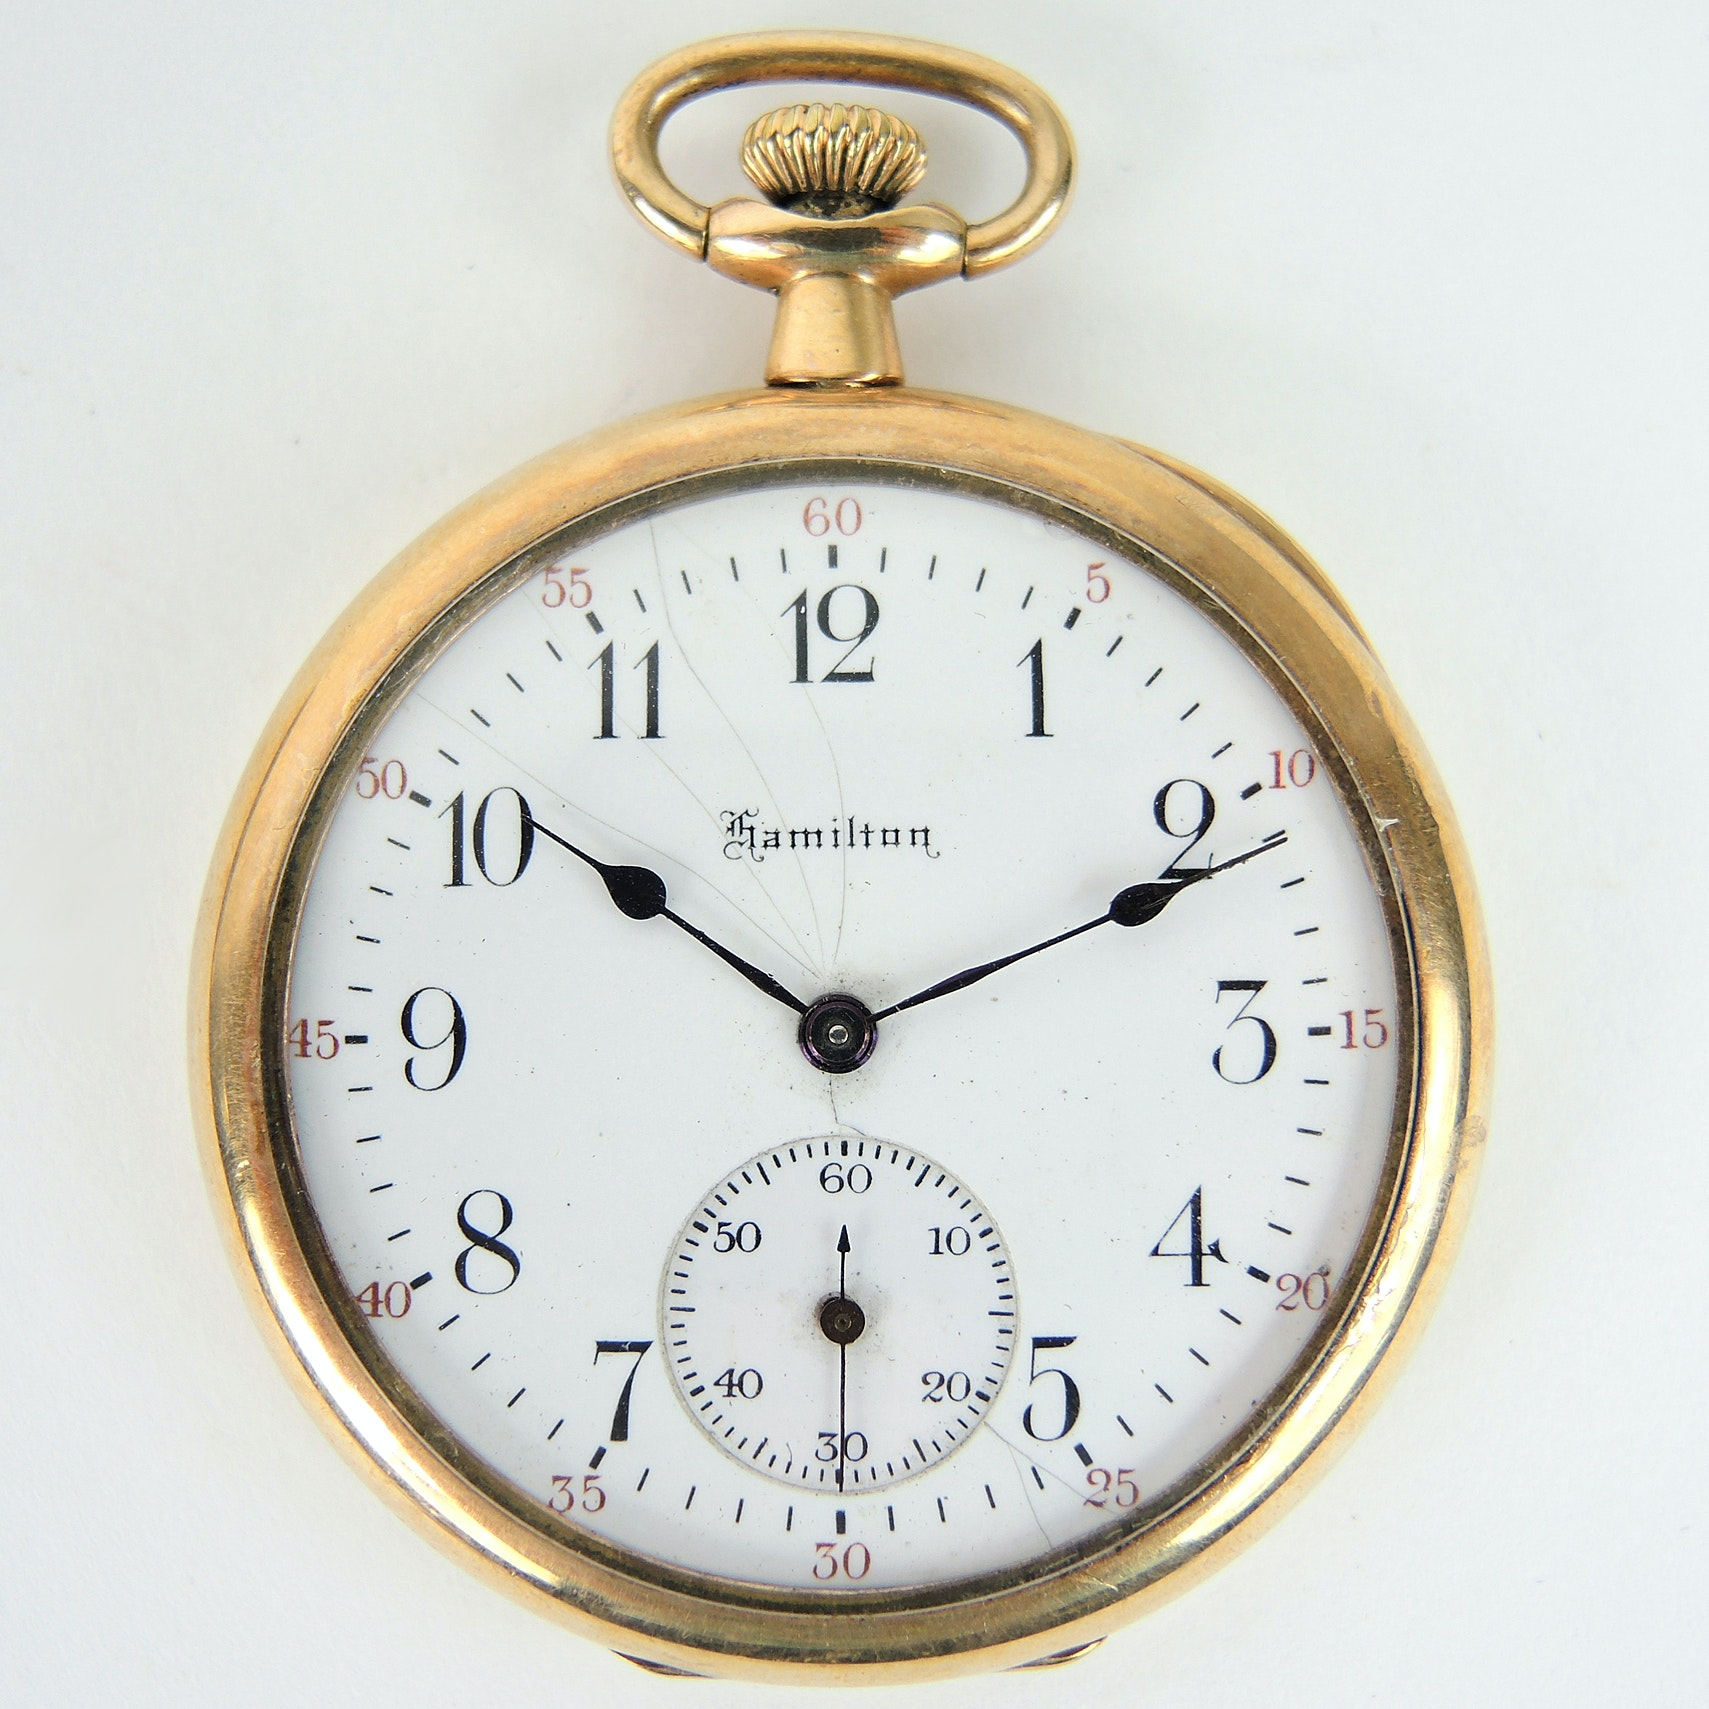 Antique Hamilton Pocket Watch with Display Case